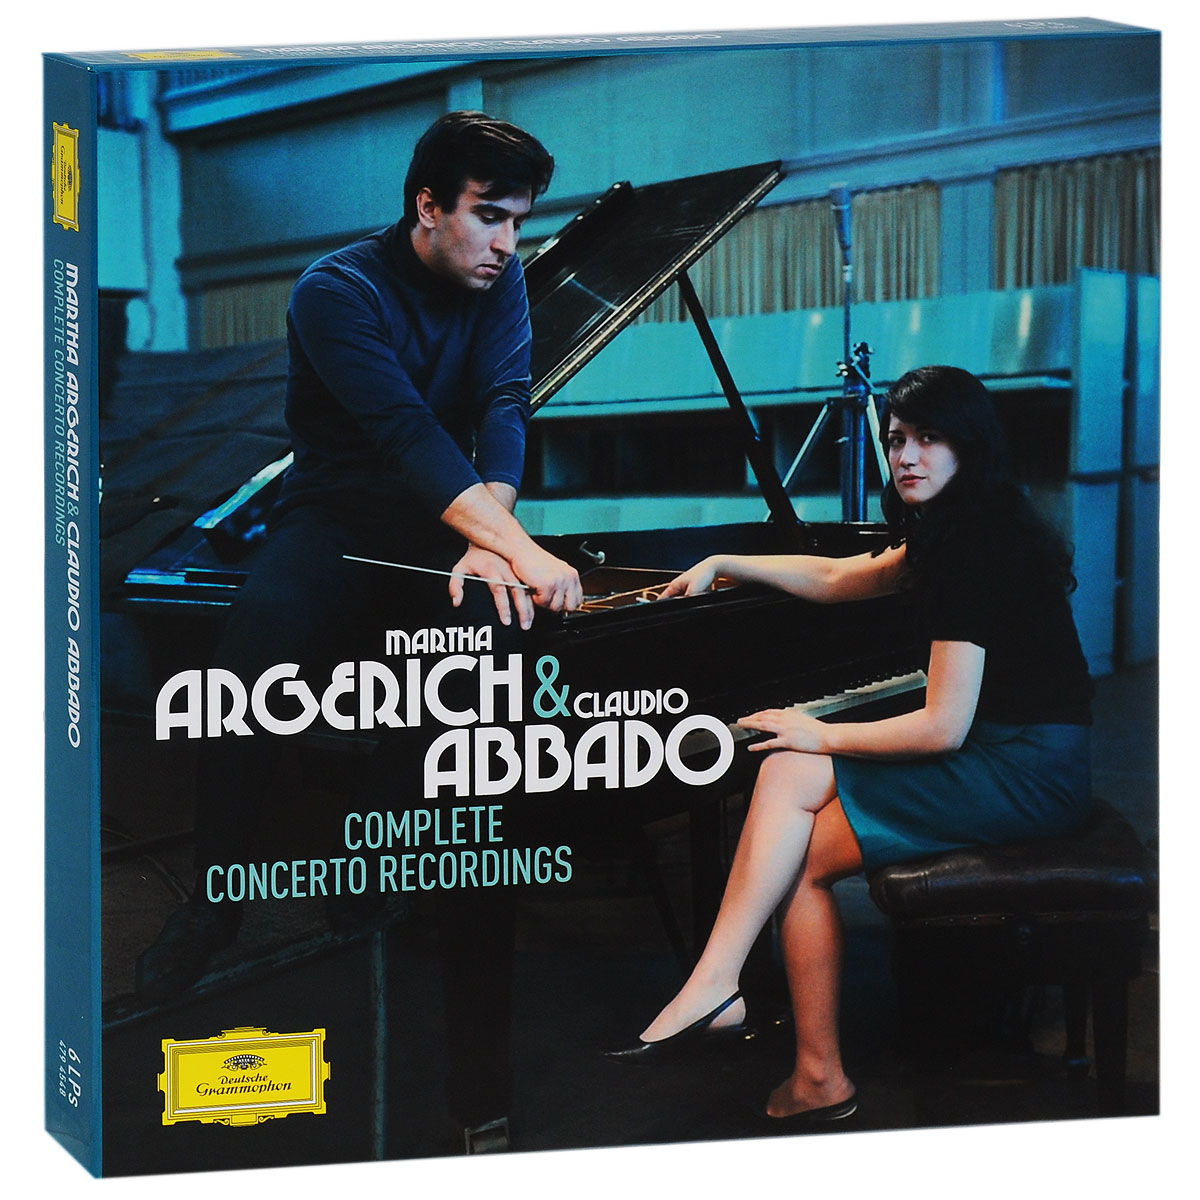 Марта Аргерих,Berliner Philharmoniker,Клаудио Аббадо,The London Symphony Orchestra,Mahler Chamber Orchestra,Orchestra Mozart Martha Argerich & Claudio Abbado. Complete Concerto Recordings. Limited Edition (6 LP) claudio abbado sting prokofiev peter and the wolf